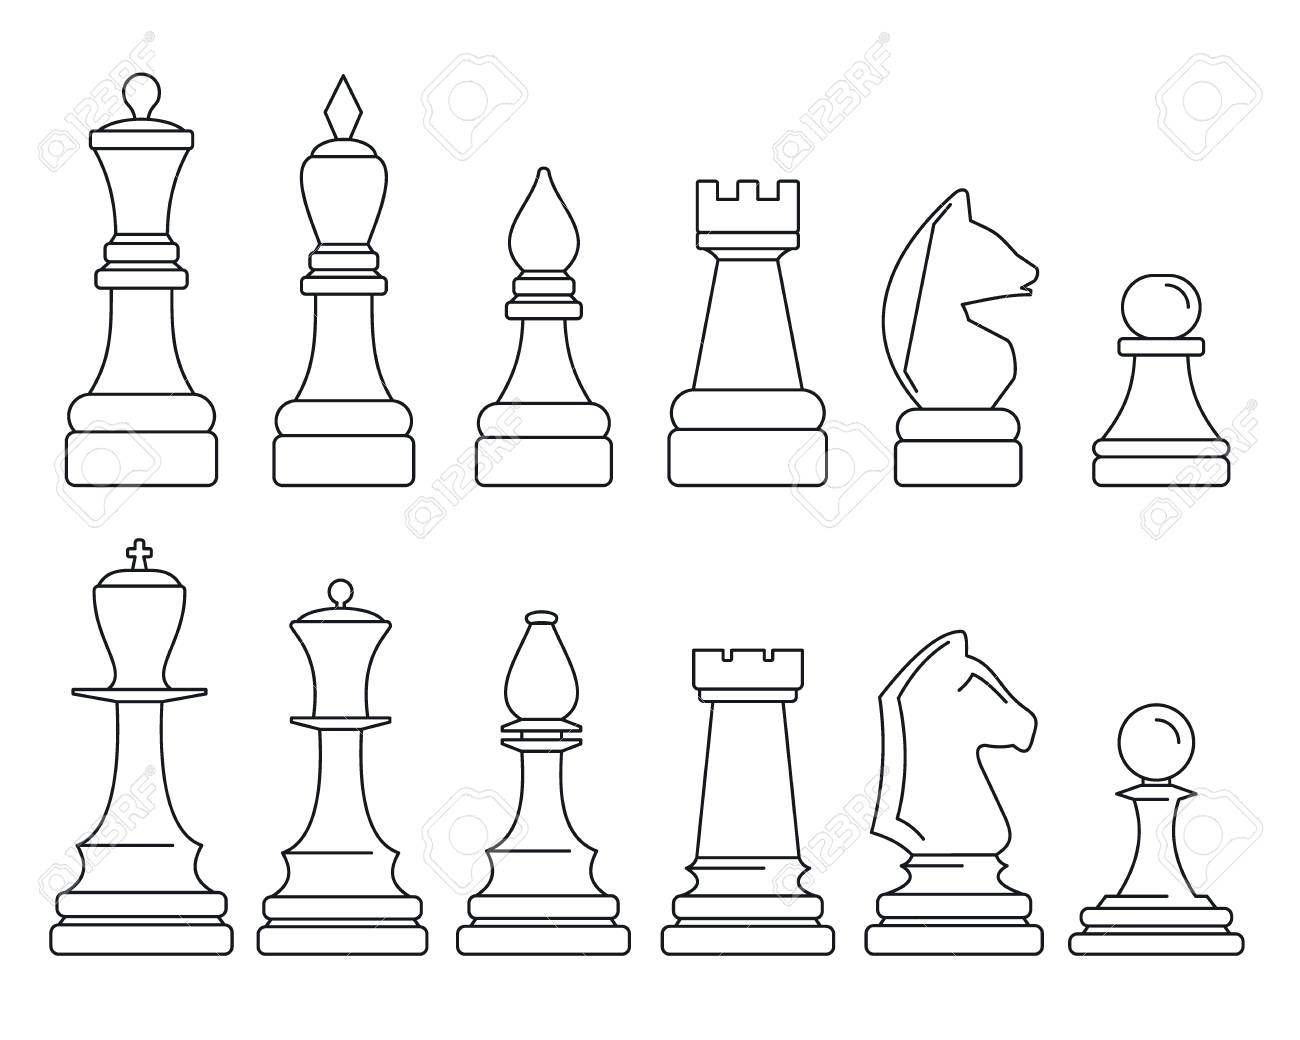 image regarding Printable Chess Pieces named Chess piece icon mounted, define layout